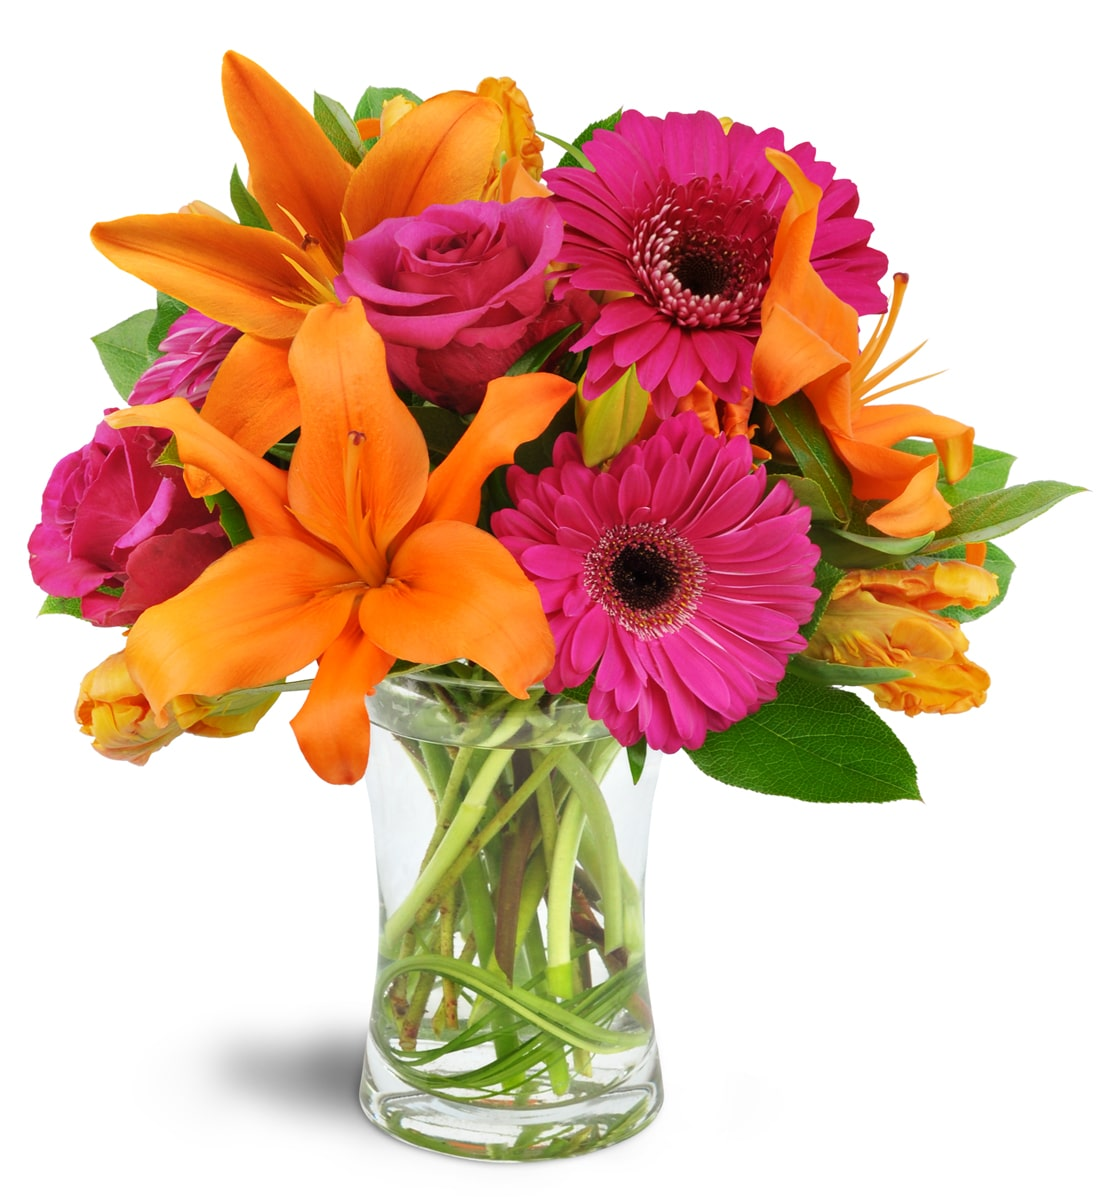 With A Progifter Flower Delivery Subscription You Can Save Up To 70 On Your Order And Send Multiple Bouquets Addresses Or The Same Address